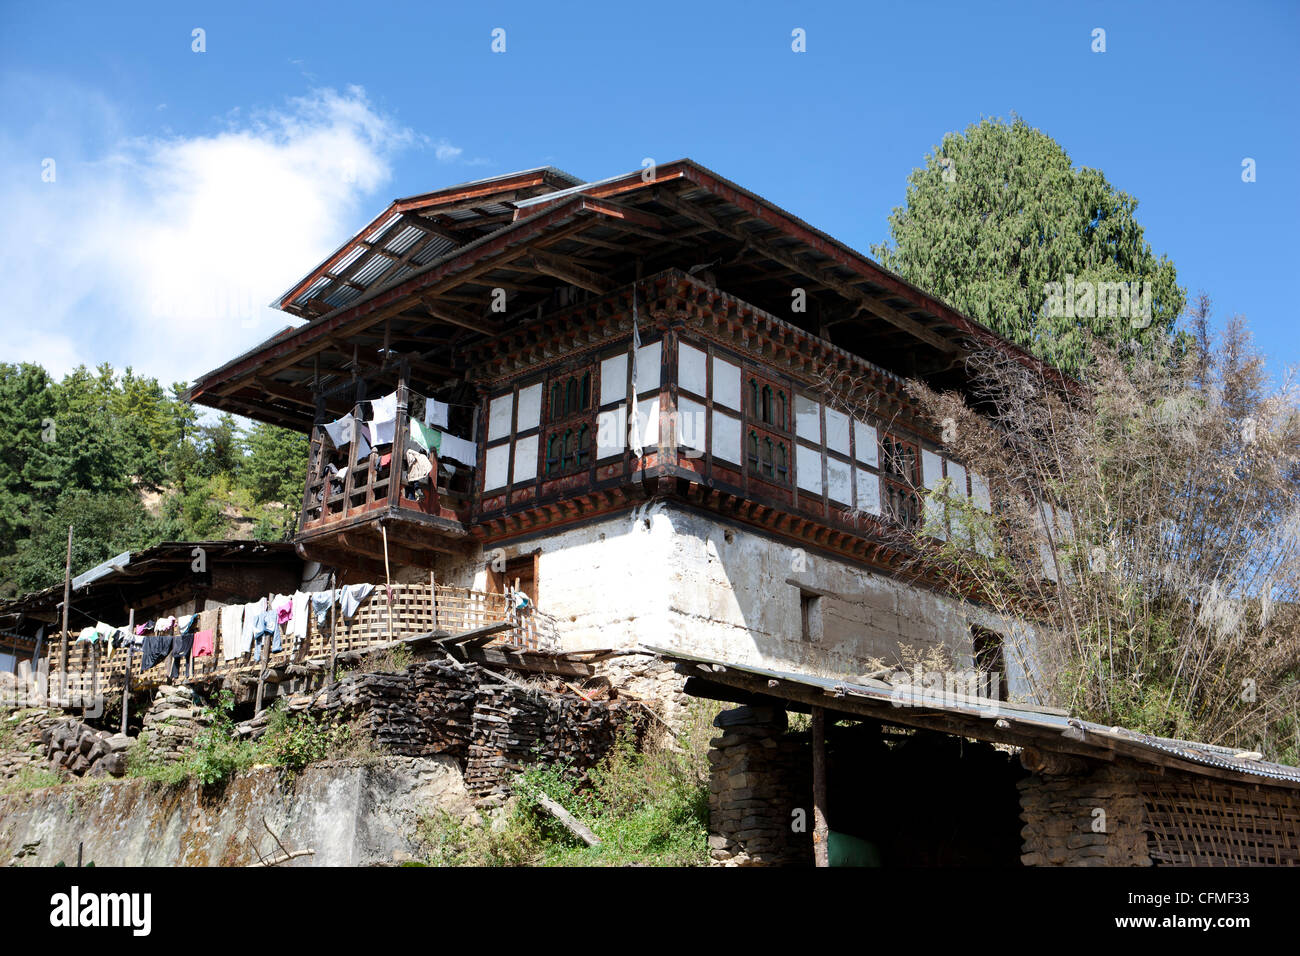 Traditional Bhutanese house in the Bumthang Valley, Bhutan, Asia - Stock Image